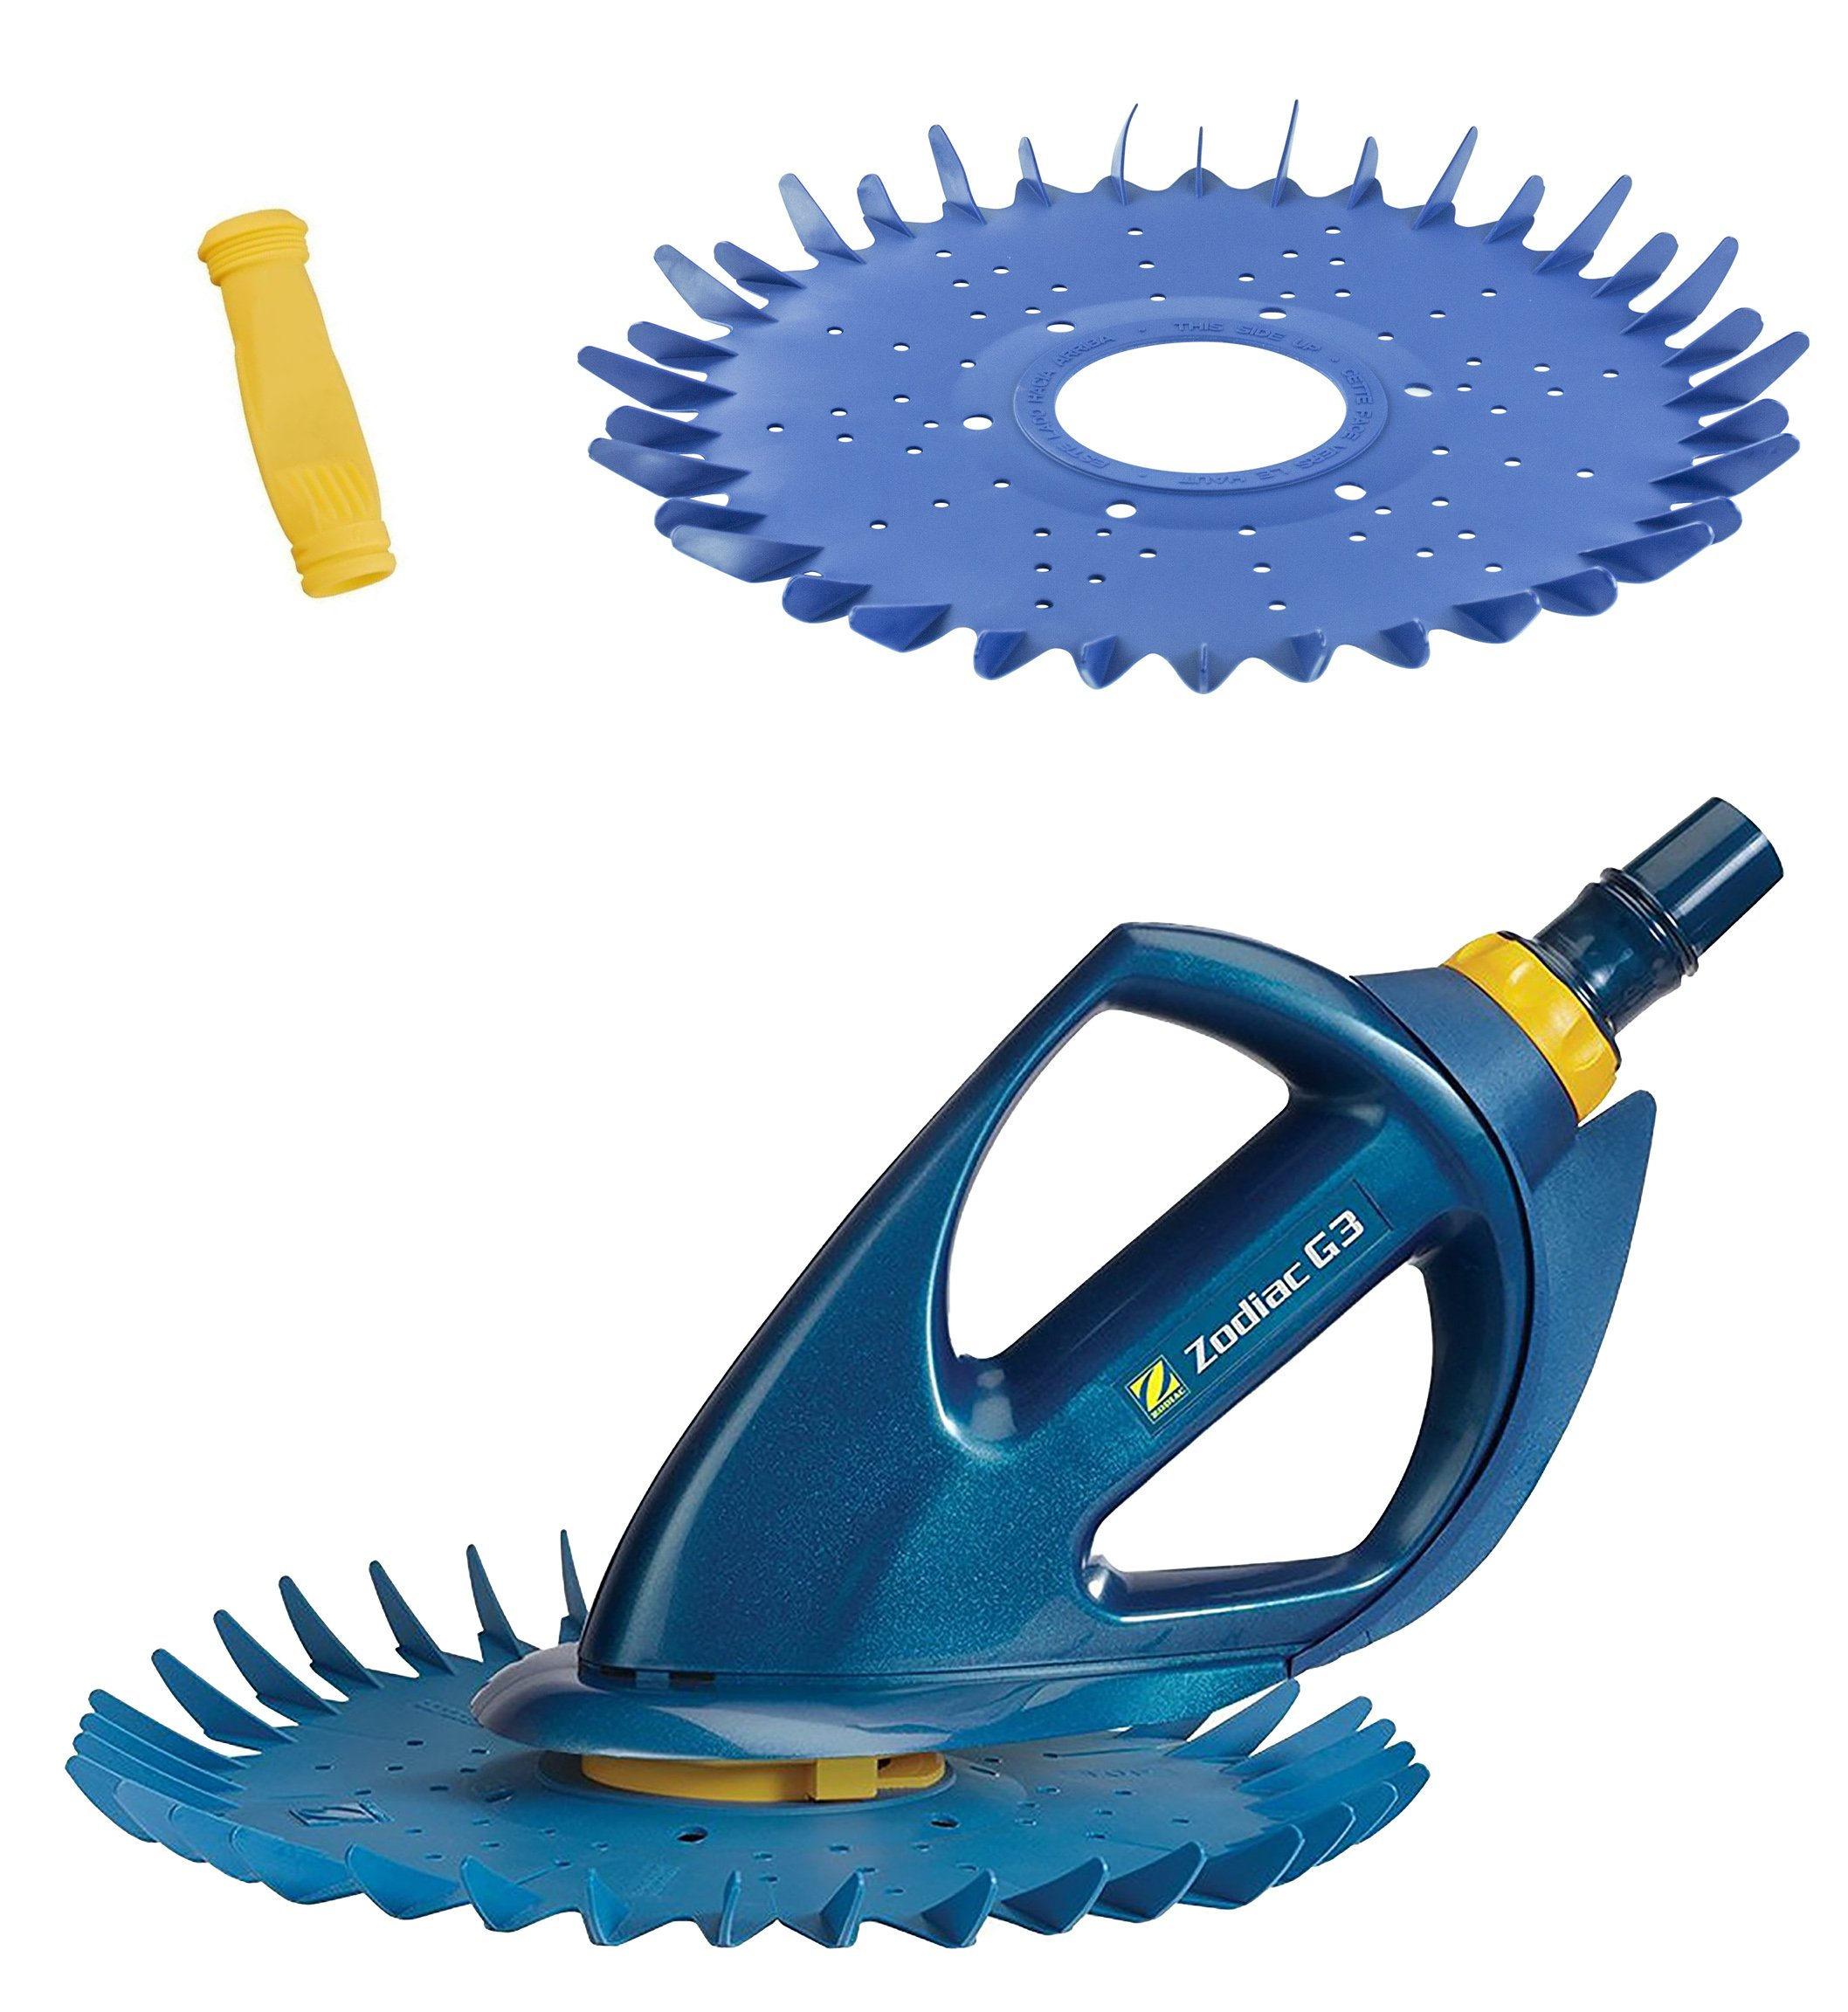 Zodiac BARACUDA G3 W03000 Advanced Suction Side Automatic Pool Cleaner with Additional Diaphragm and Finned Disc by Zodiac